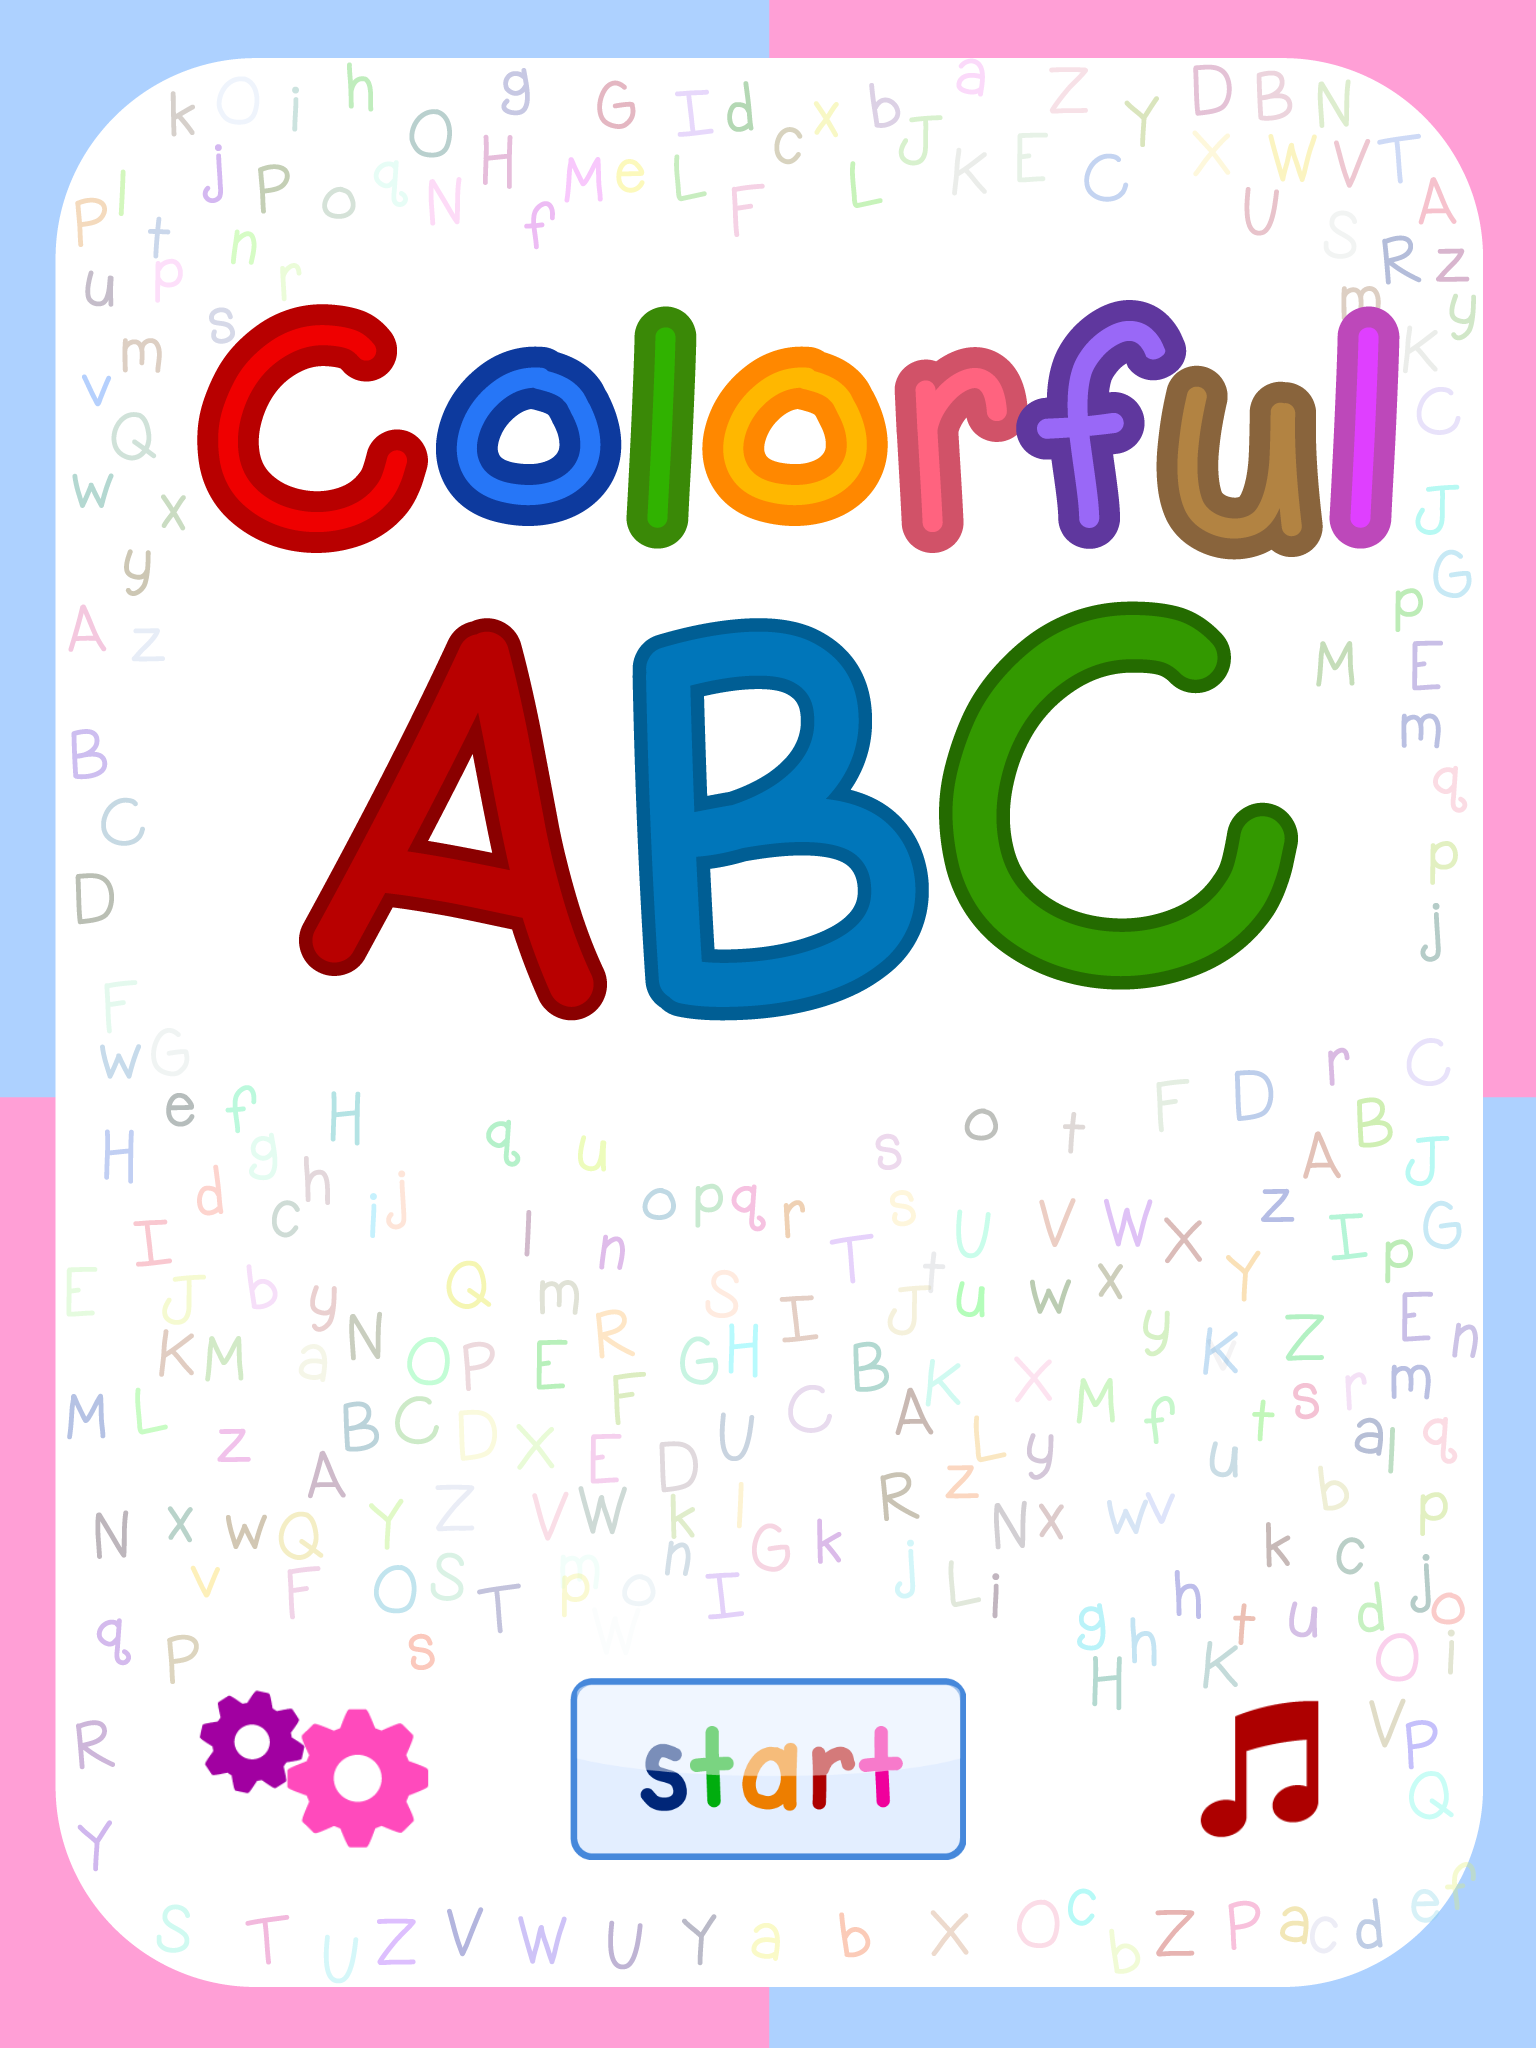 ABC Song - Alphabet Song with Action & Touch Sound Effect